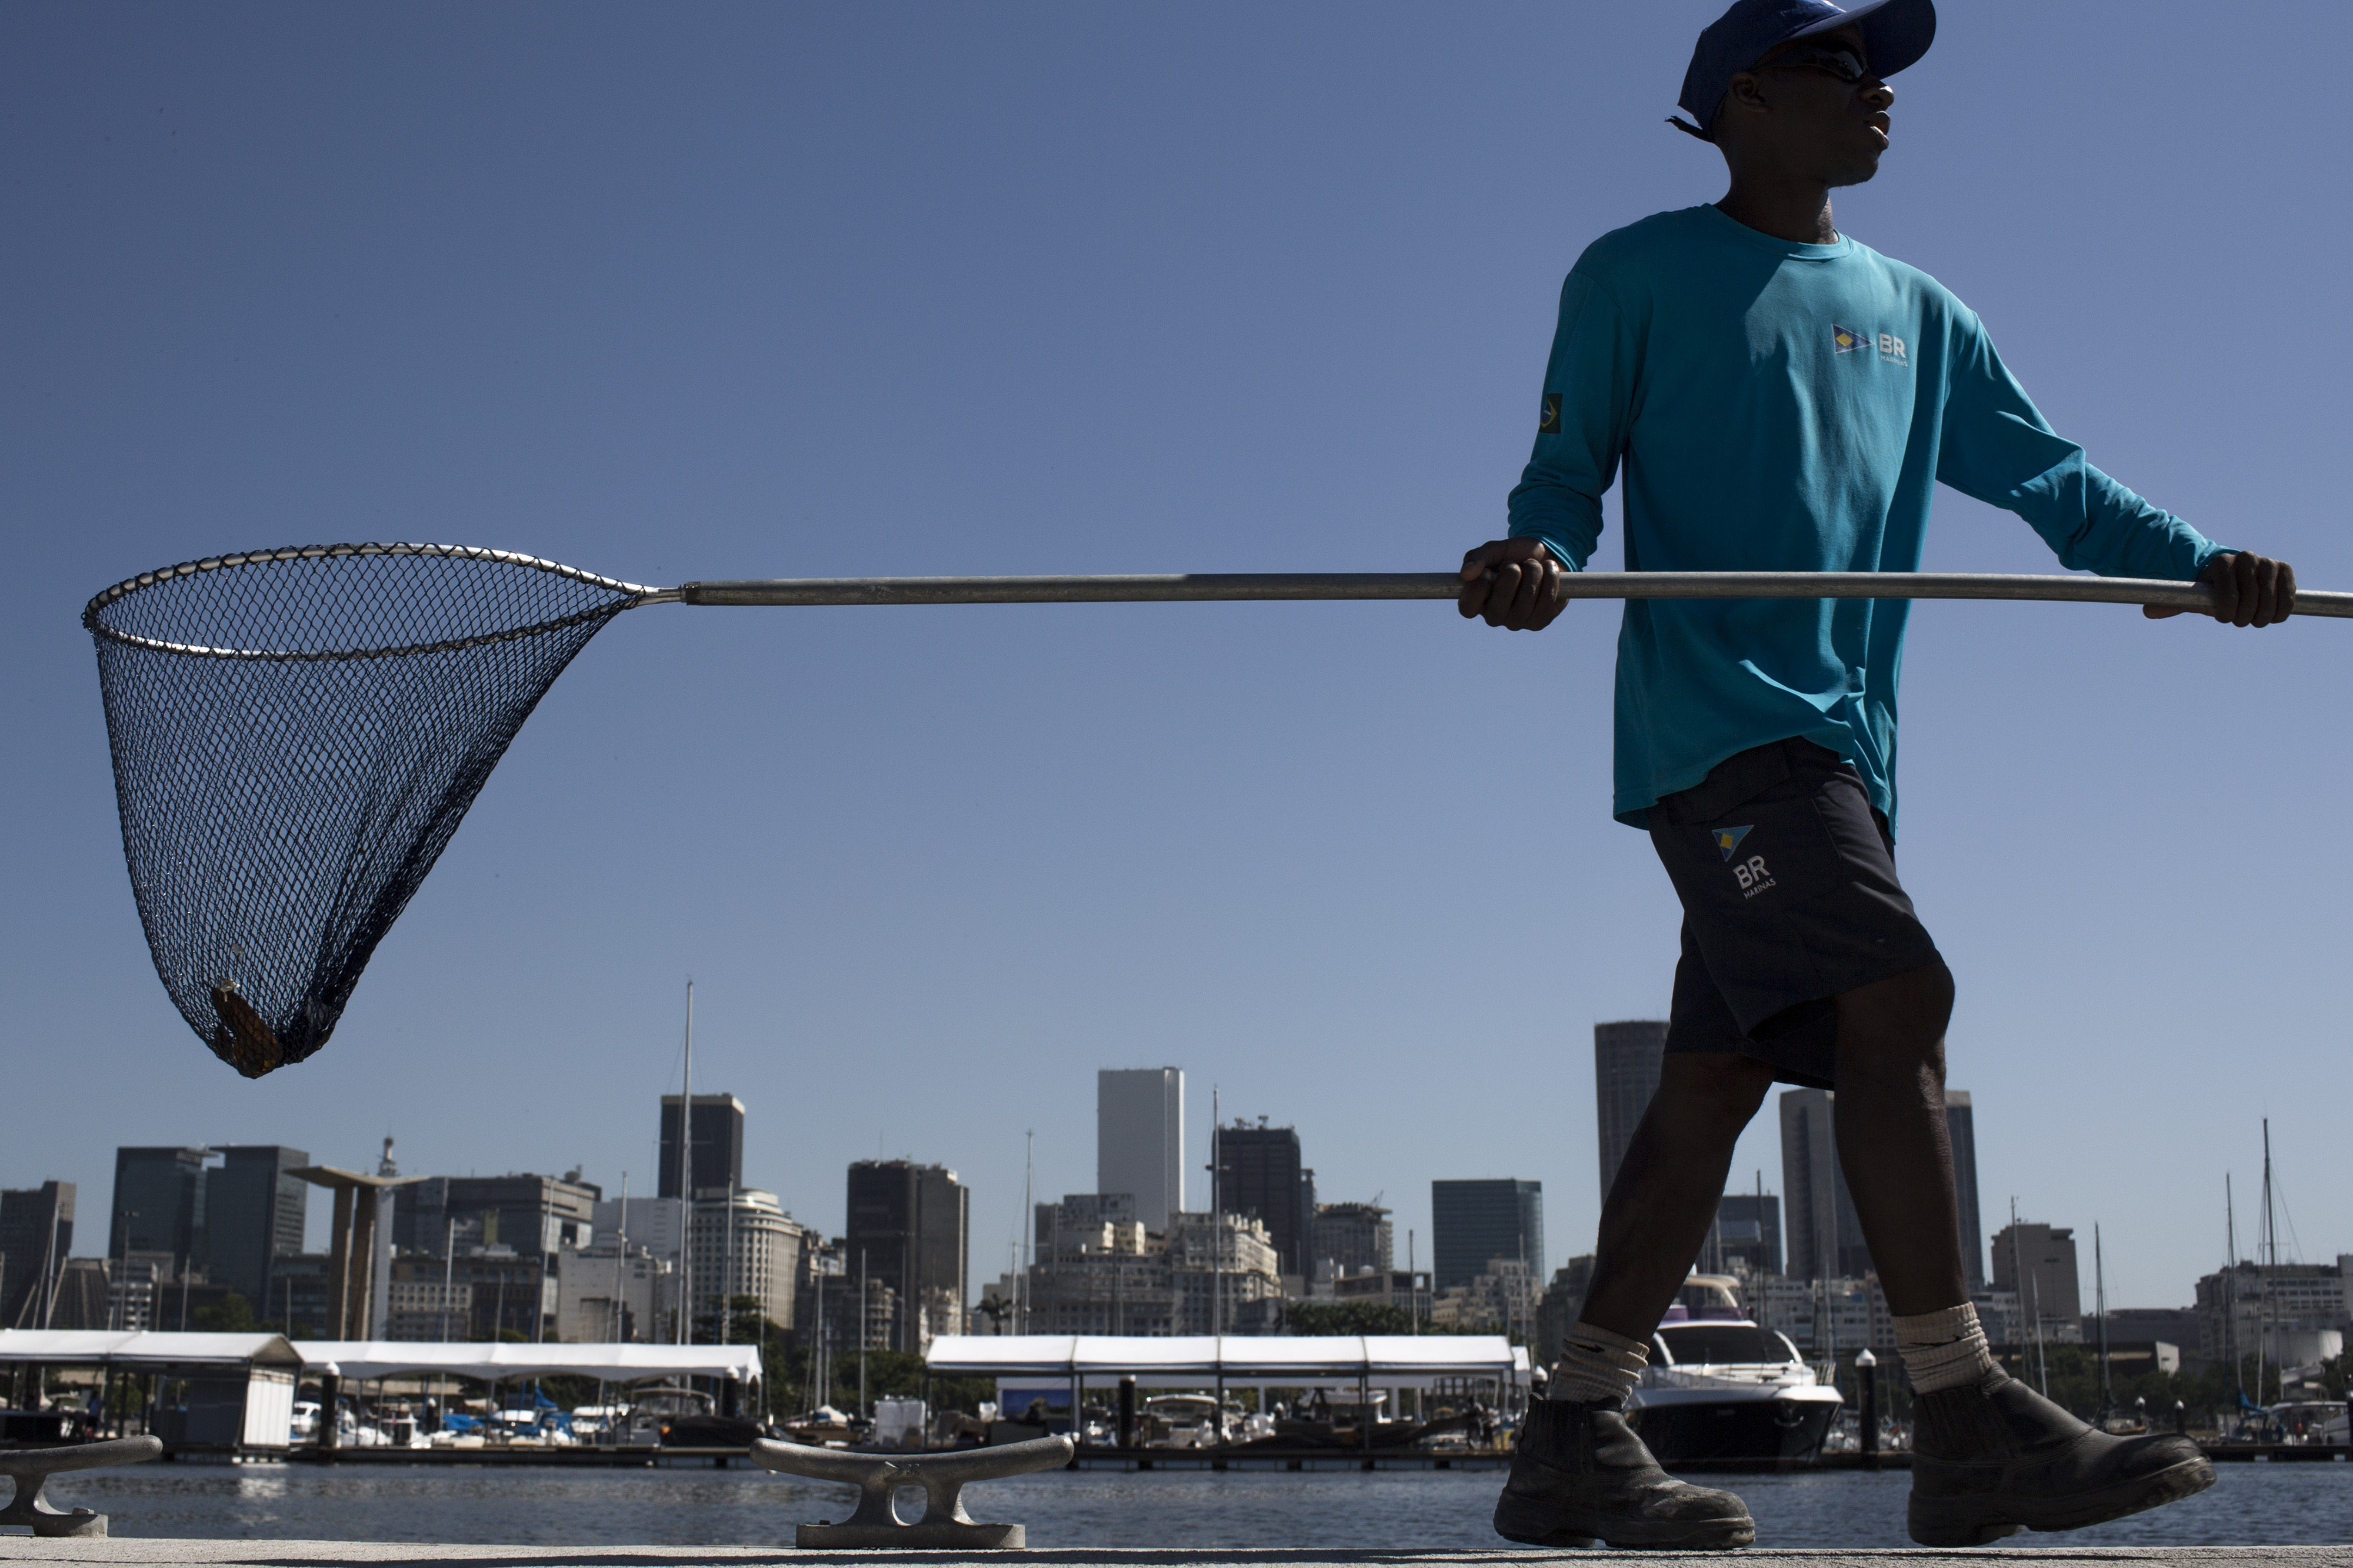 FILE - In this April 7, 2016 file photo, a worker collects floating trash from Guanabara Bay during the inauguration of the renovated Marina da Gloria in Rio de Janeiro, Brazil. Andy Hunt, the head of World Sailing, met with city, state, and organizing co